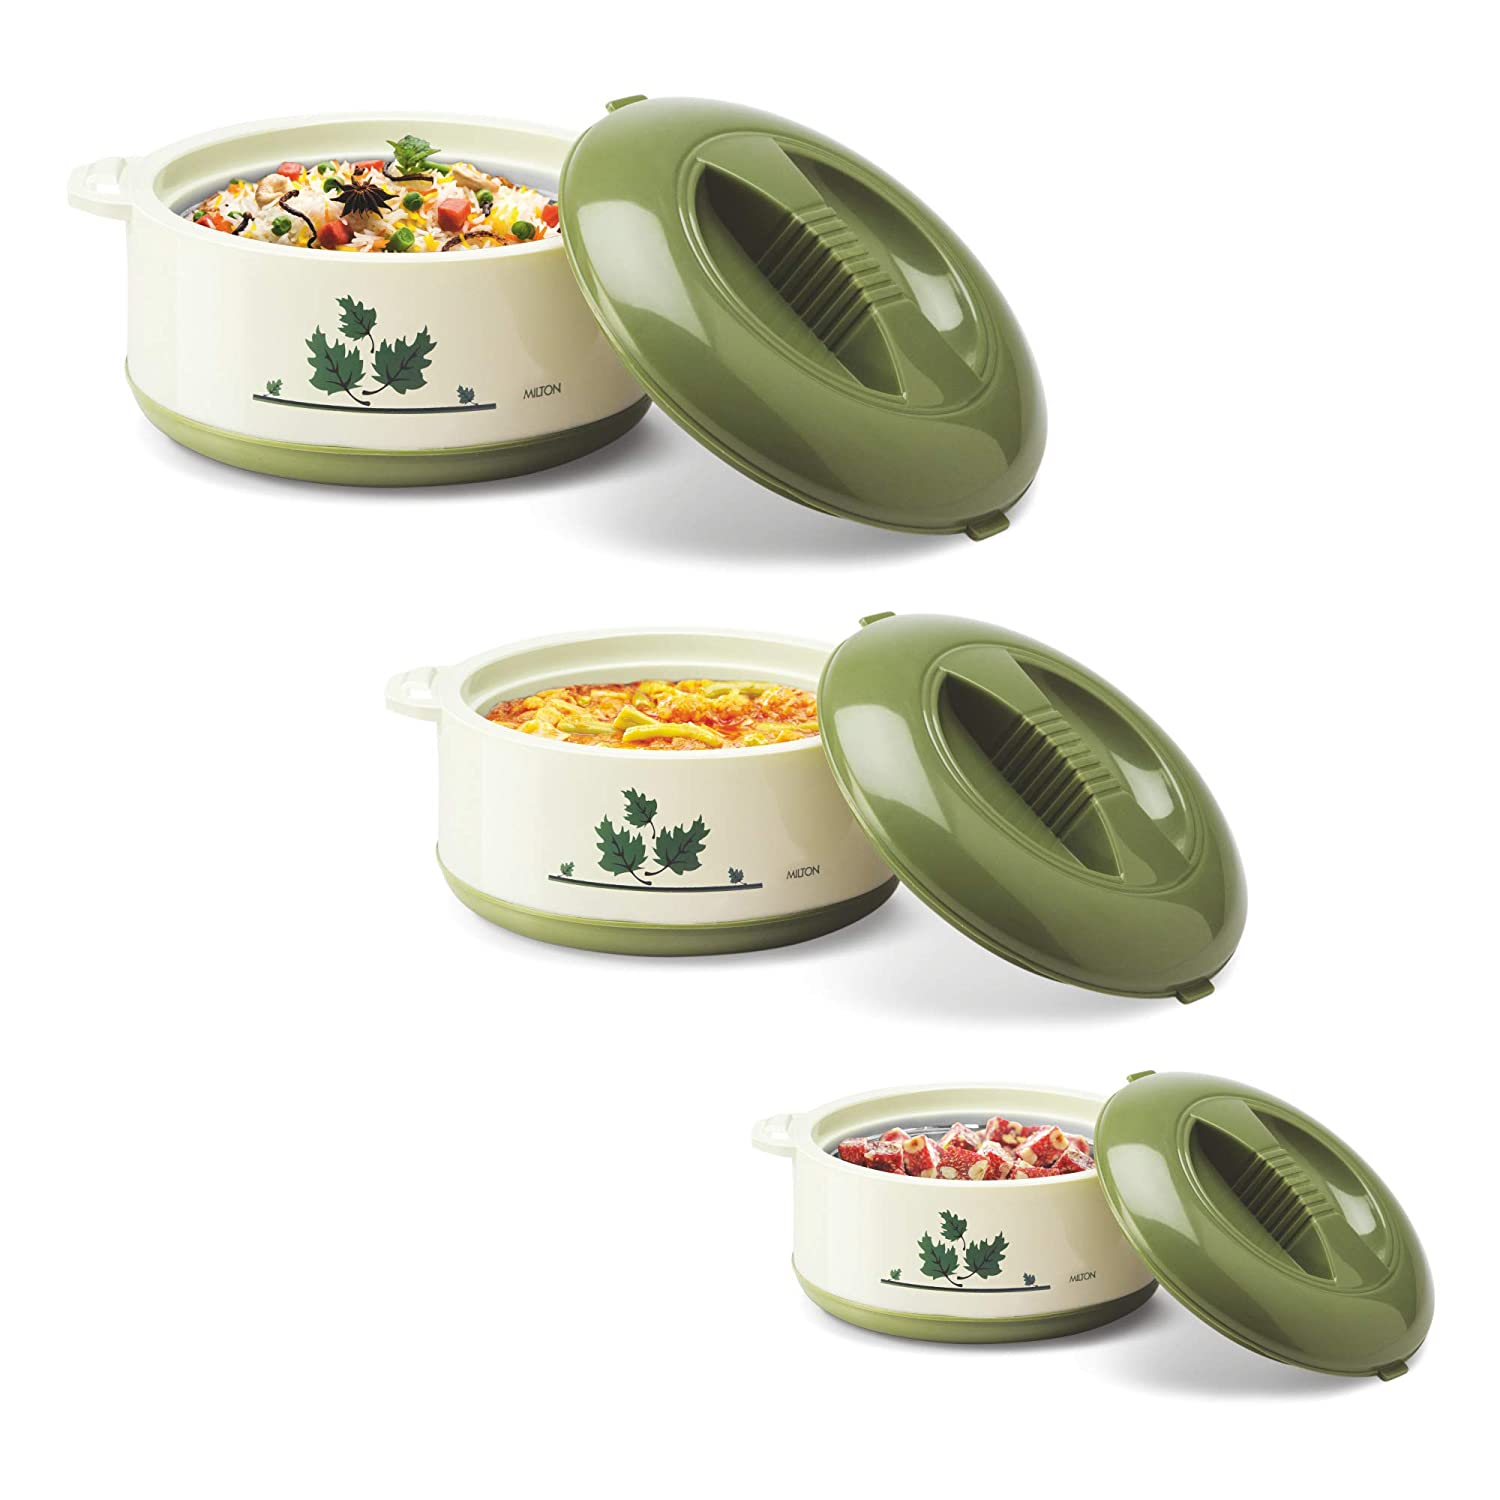 Milton Orchid 3 Piece Junior Insulated Casserole Set, Green